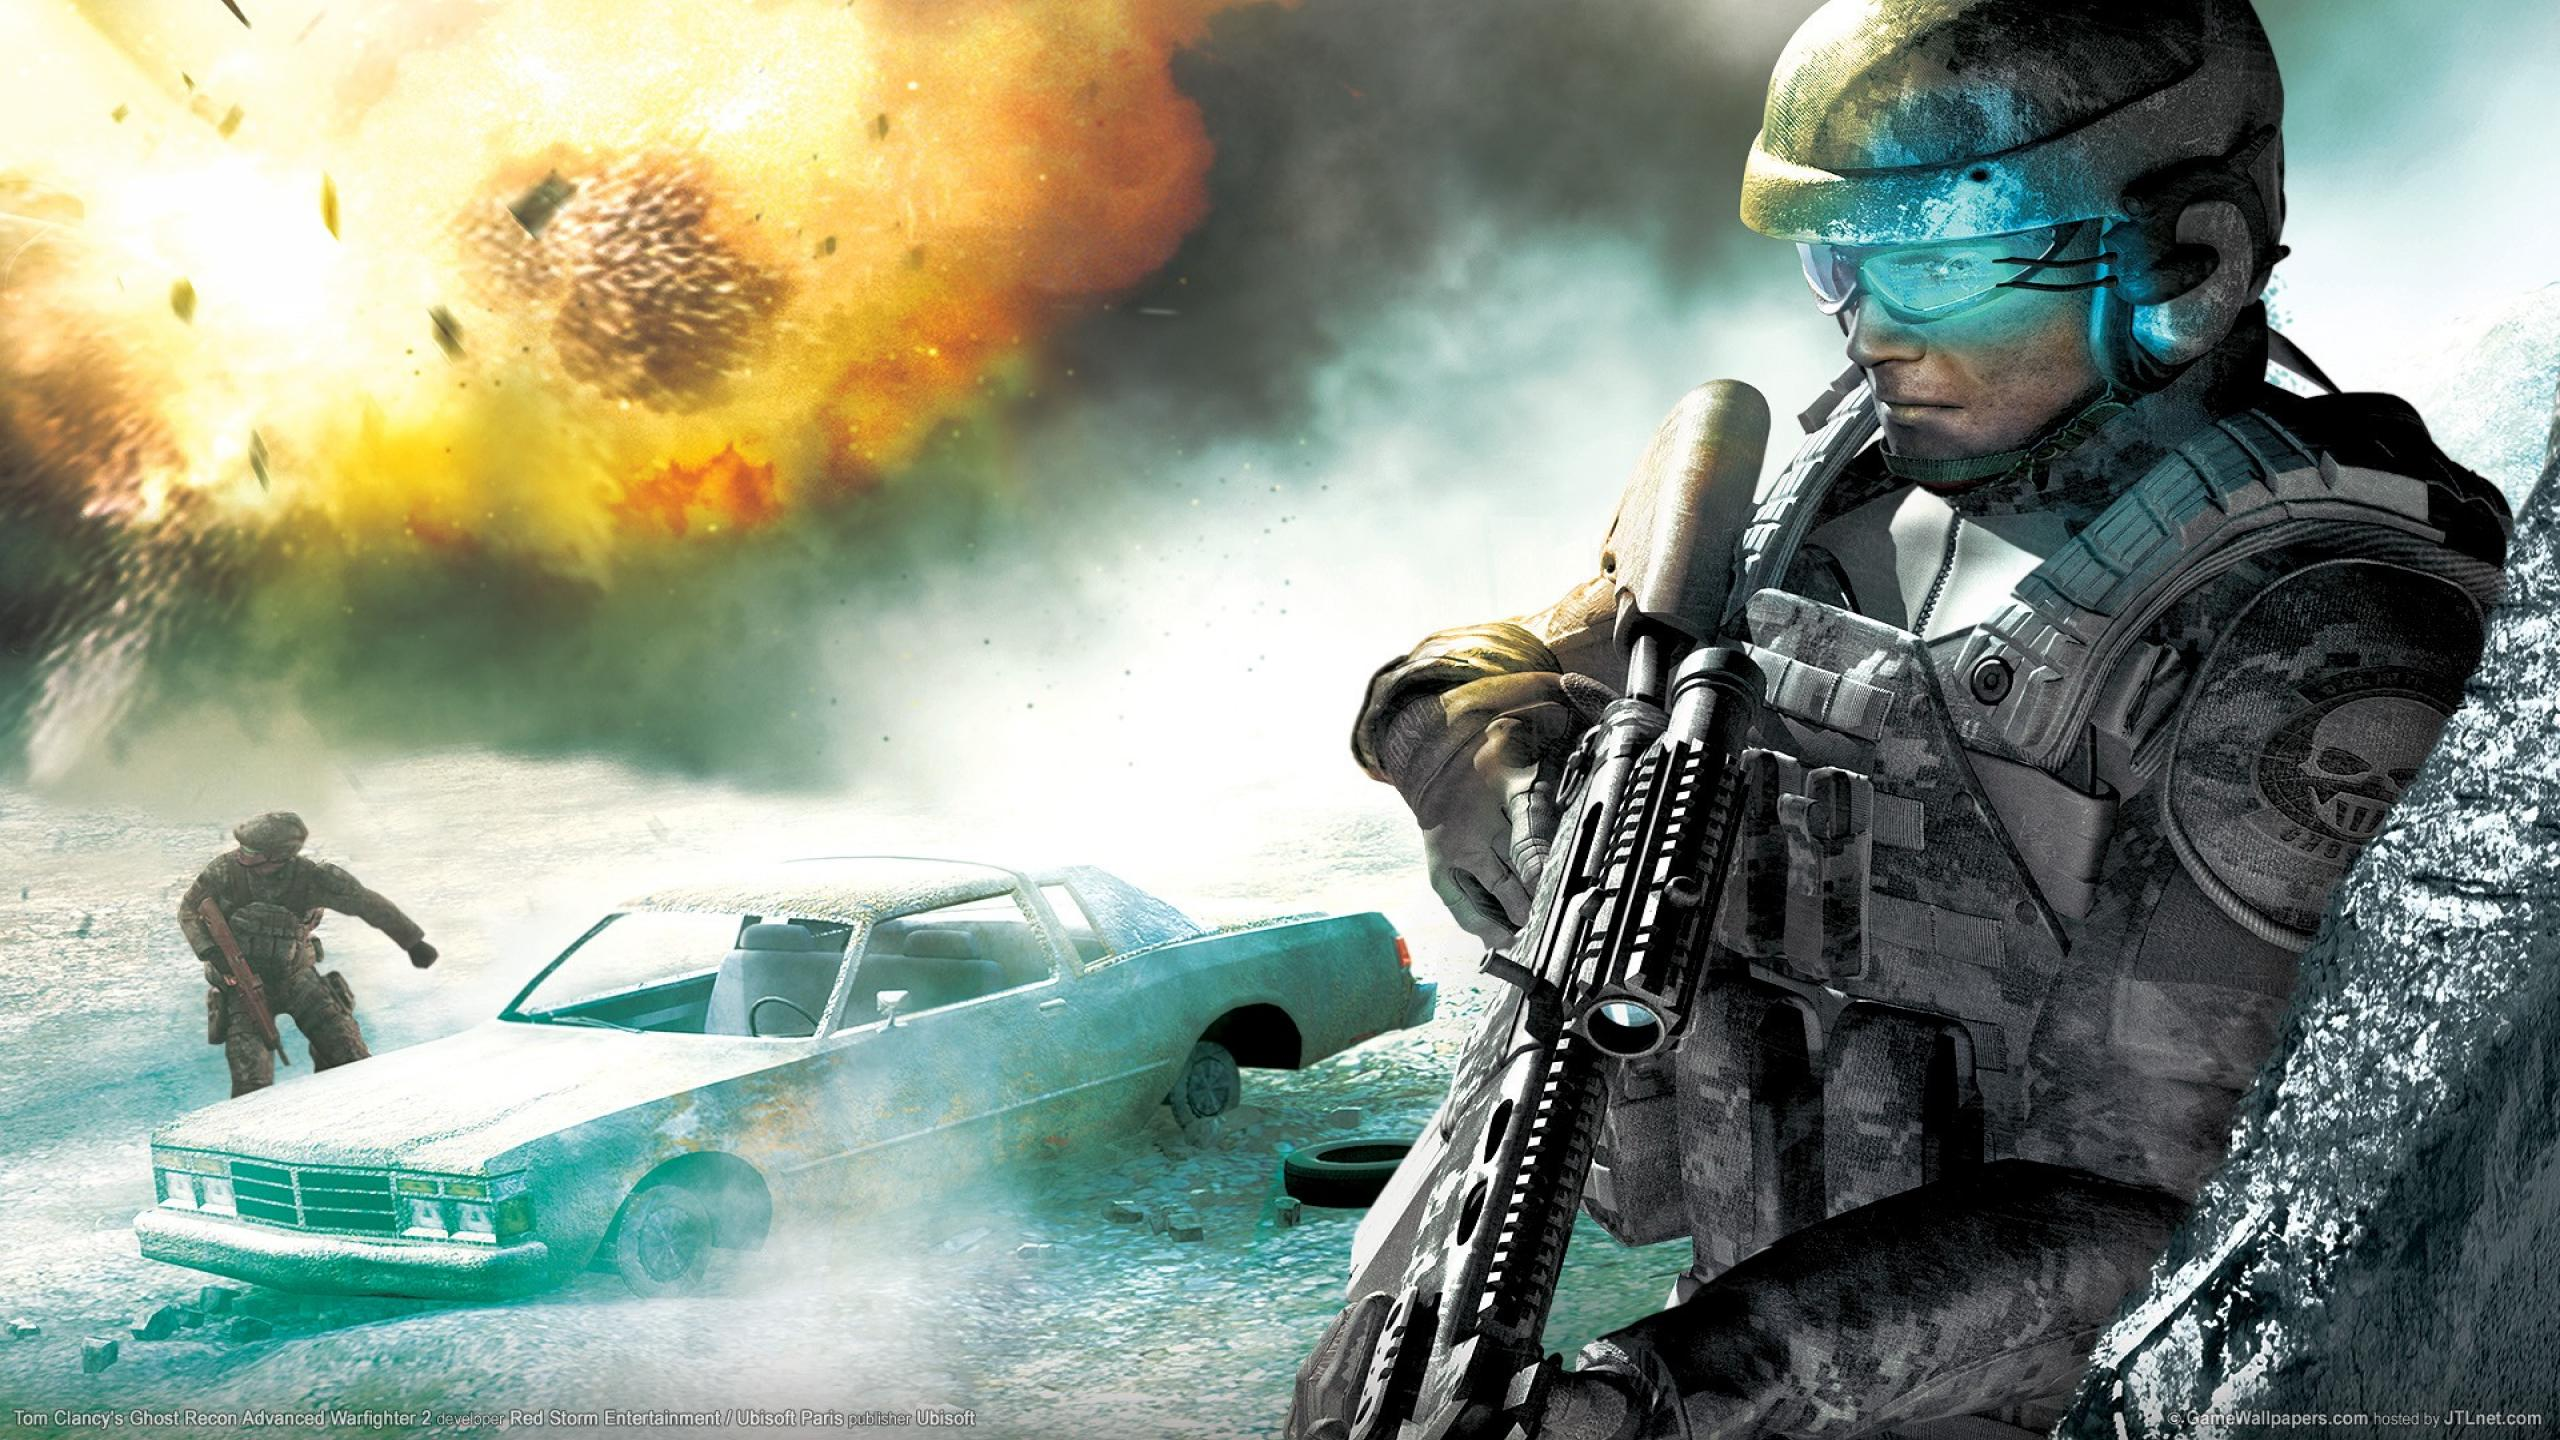 HD Wallpapers for all resolution HD 2560x1440 Game Wallpapers 2560x1440